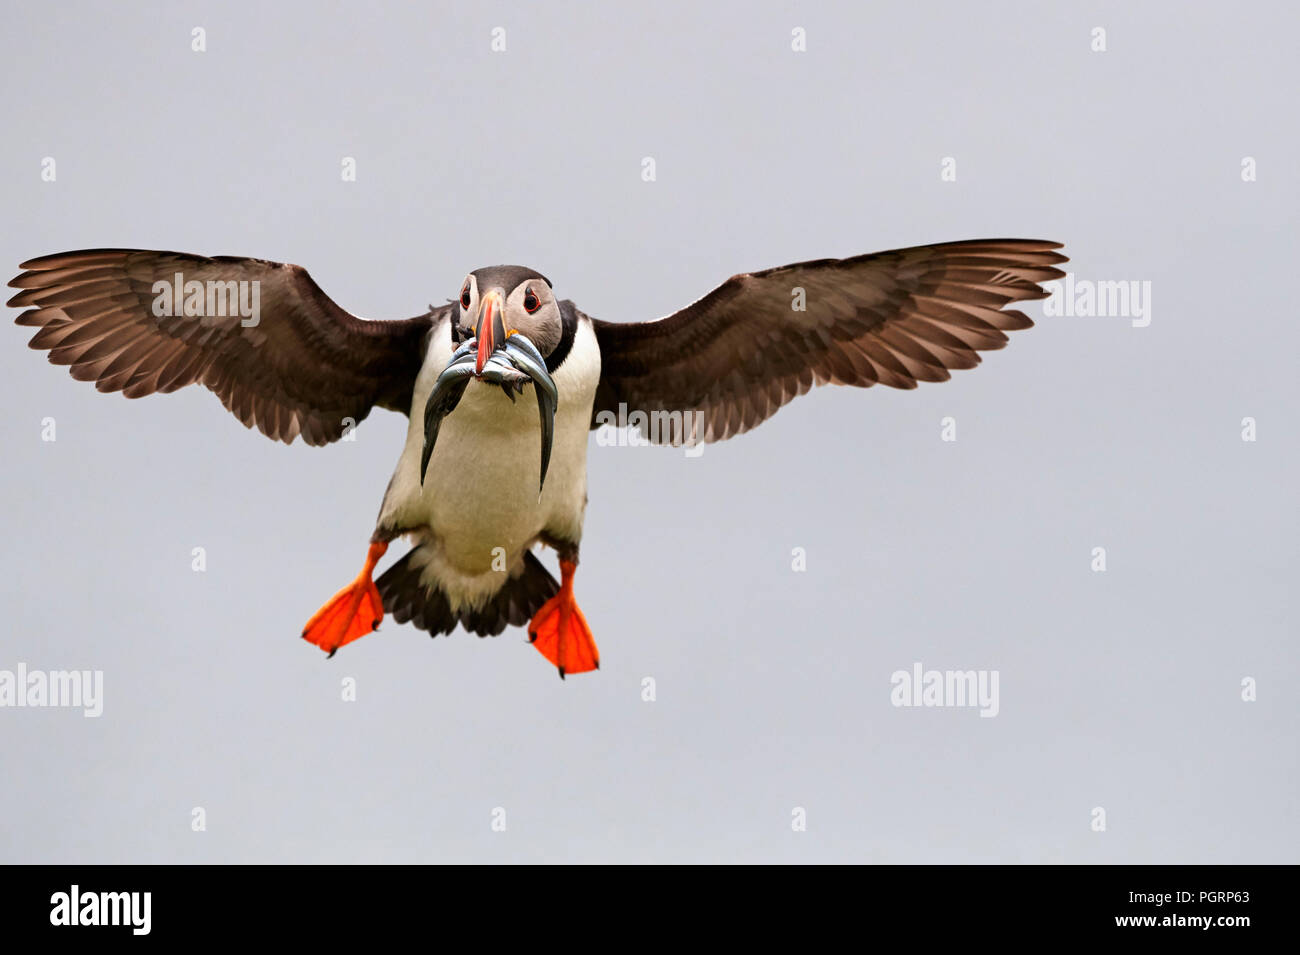 Puffin, Fratercula arctica, Mingulay, Bishop's Isles, Outer Hebrides, Scotland, UK - Stock Image